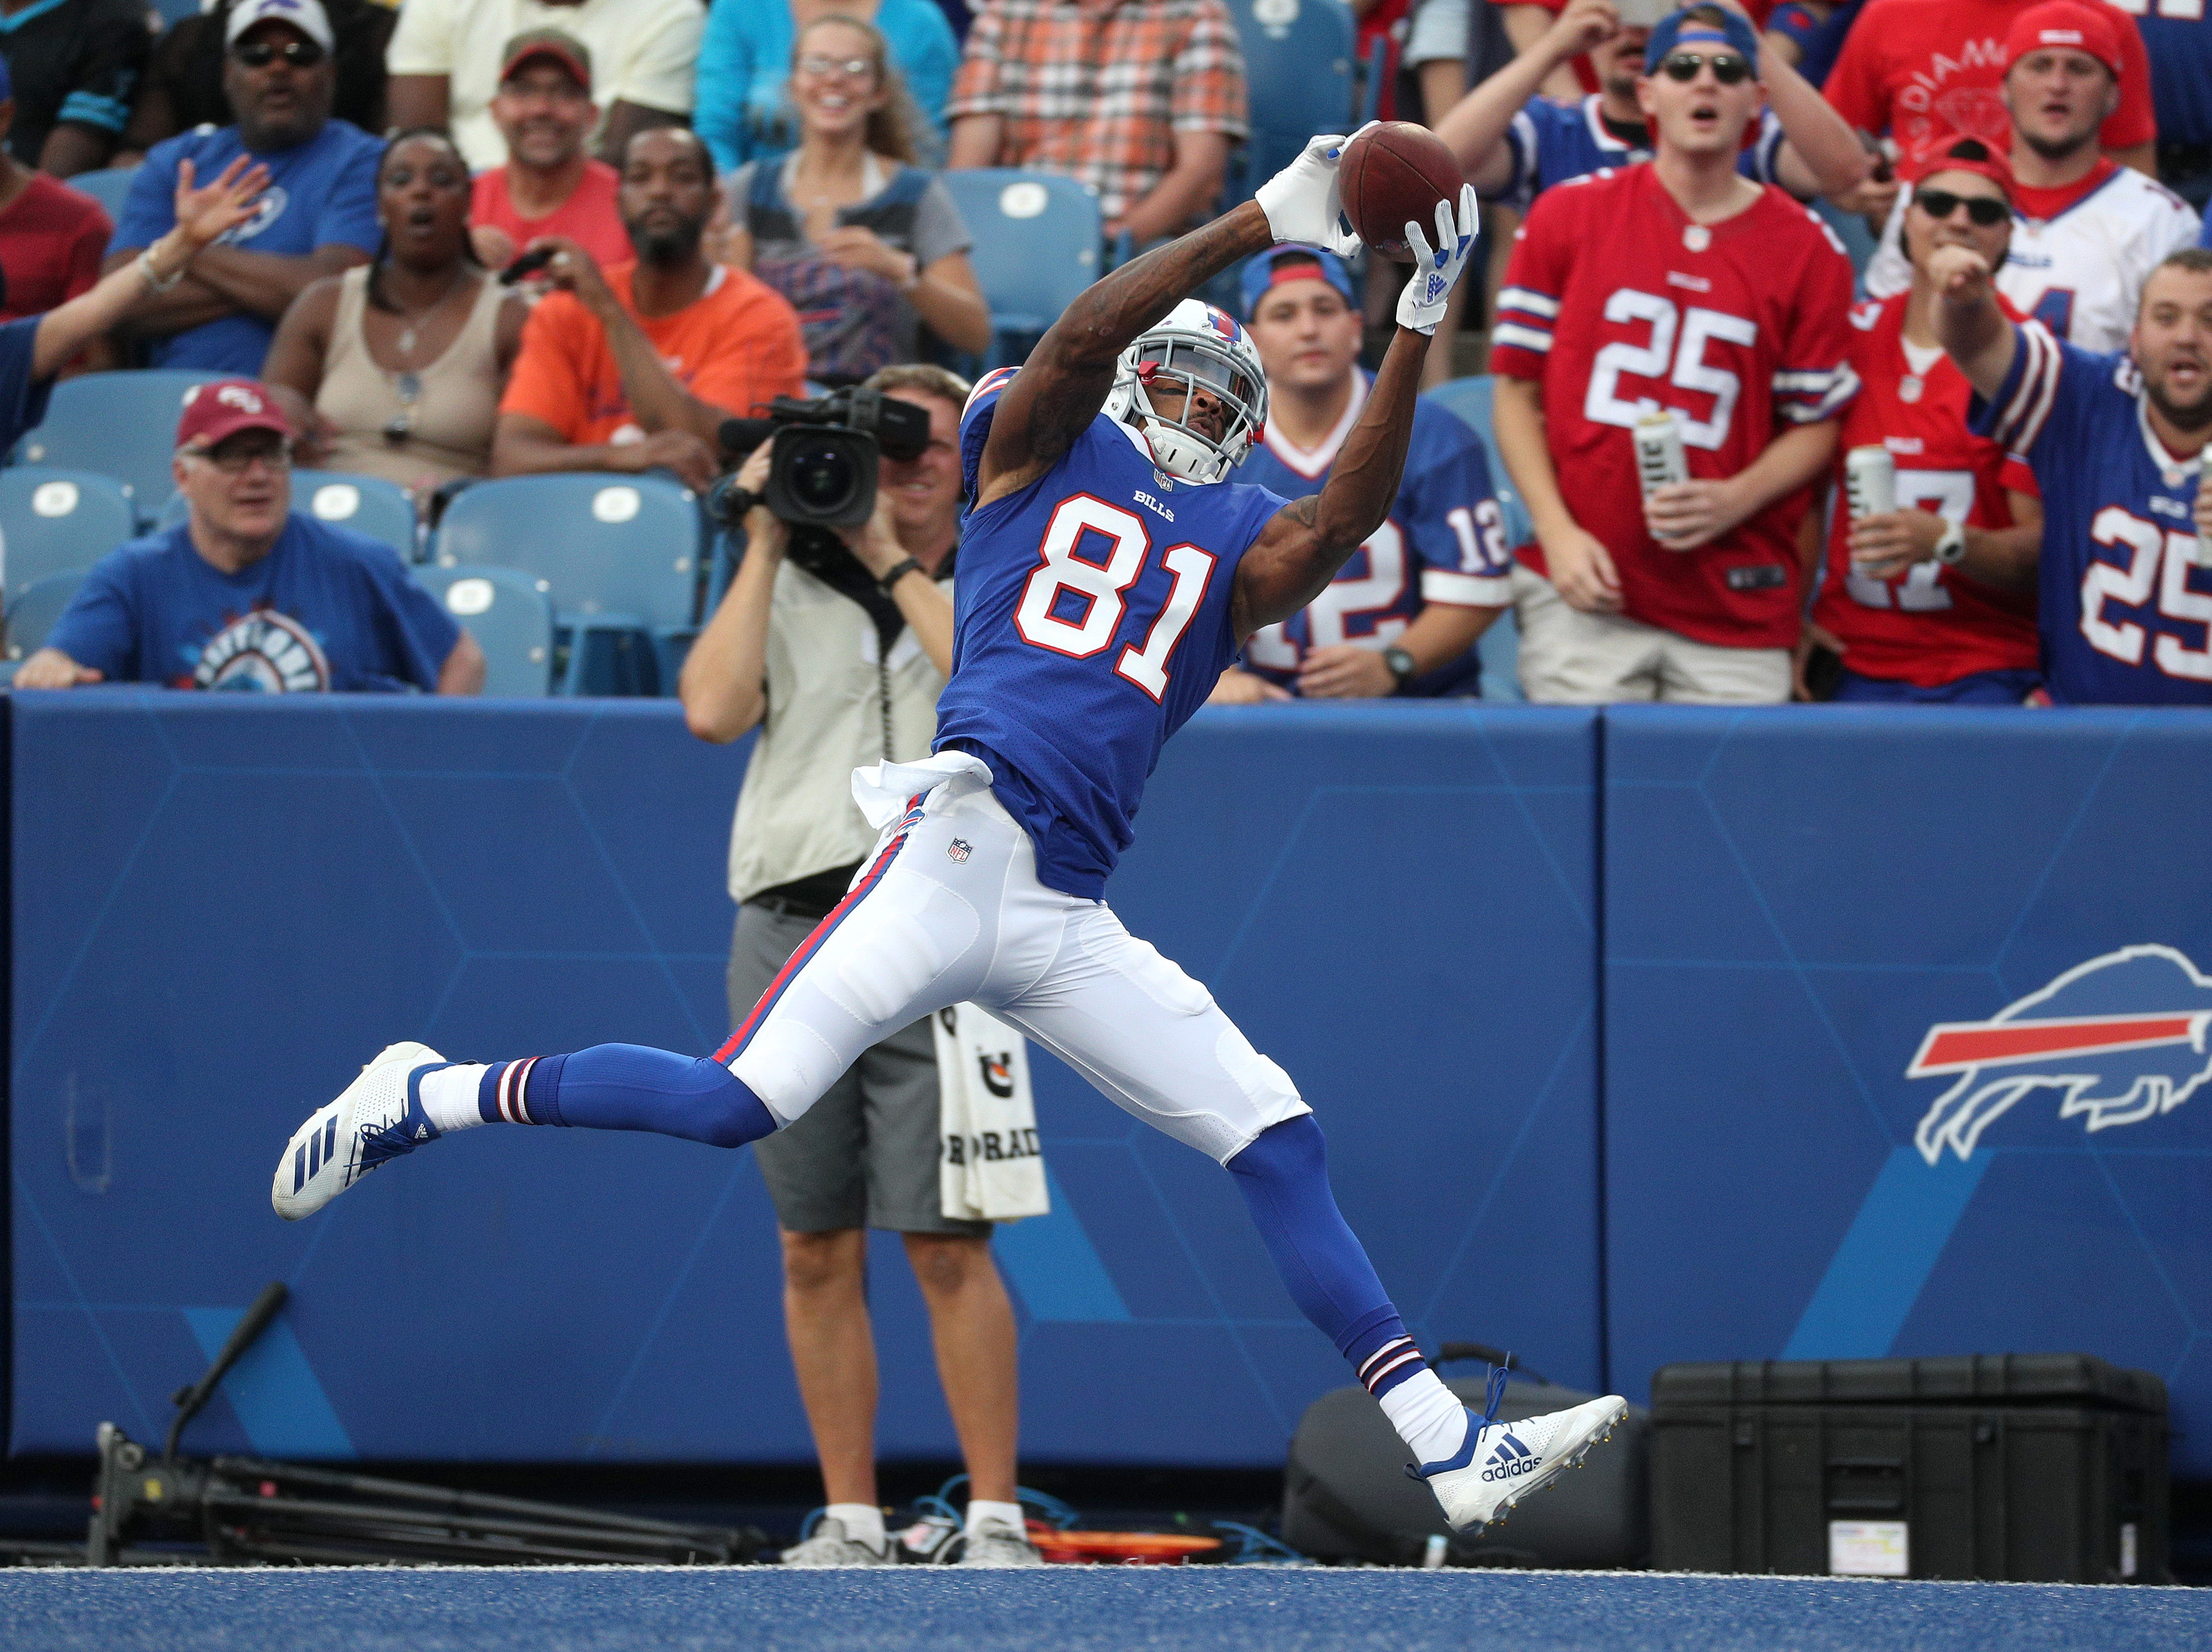 Bills receiver Rod Streater. Makes this touchdown catch that was called back due to a penalty in a 28-23 preseason loss to Carolina.